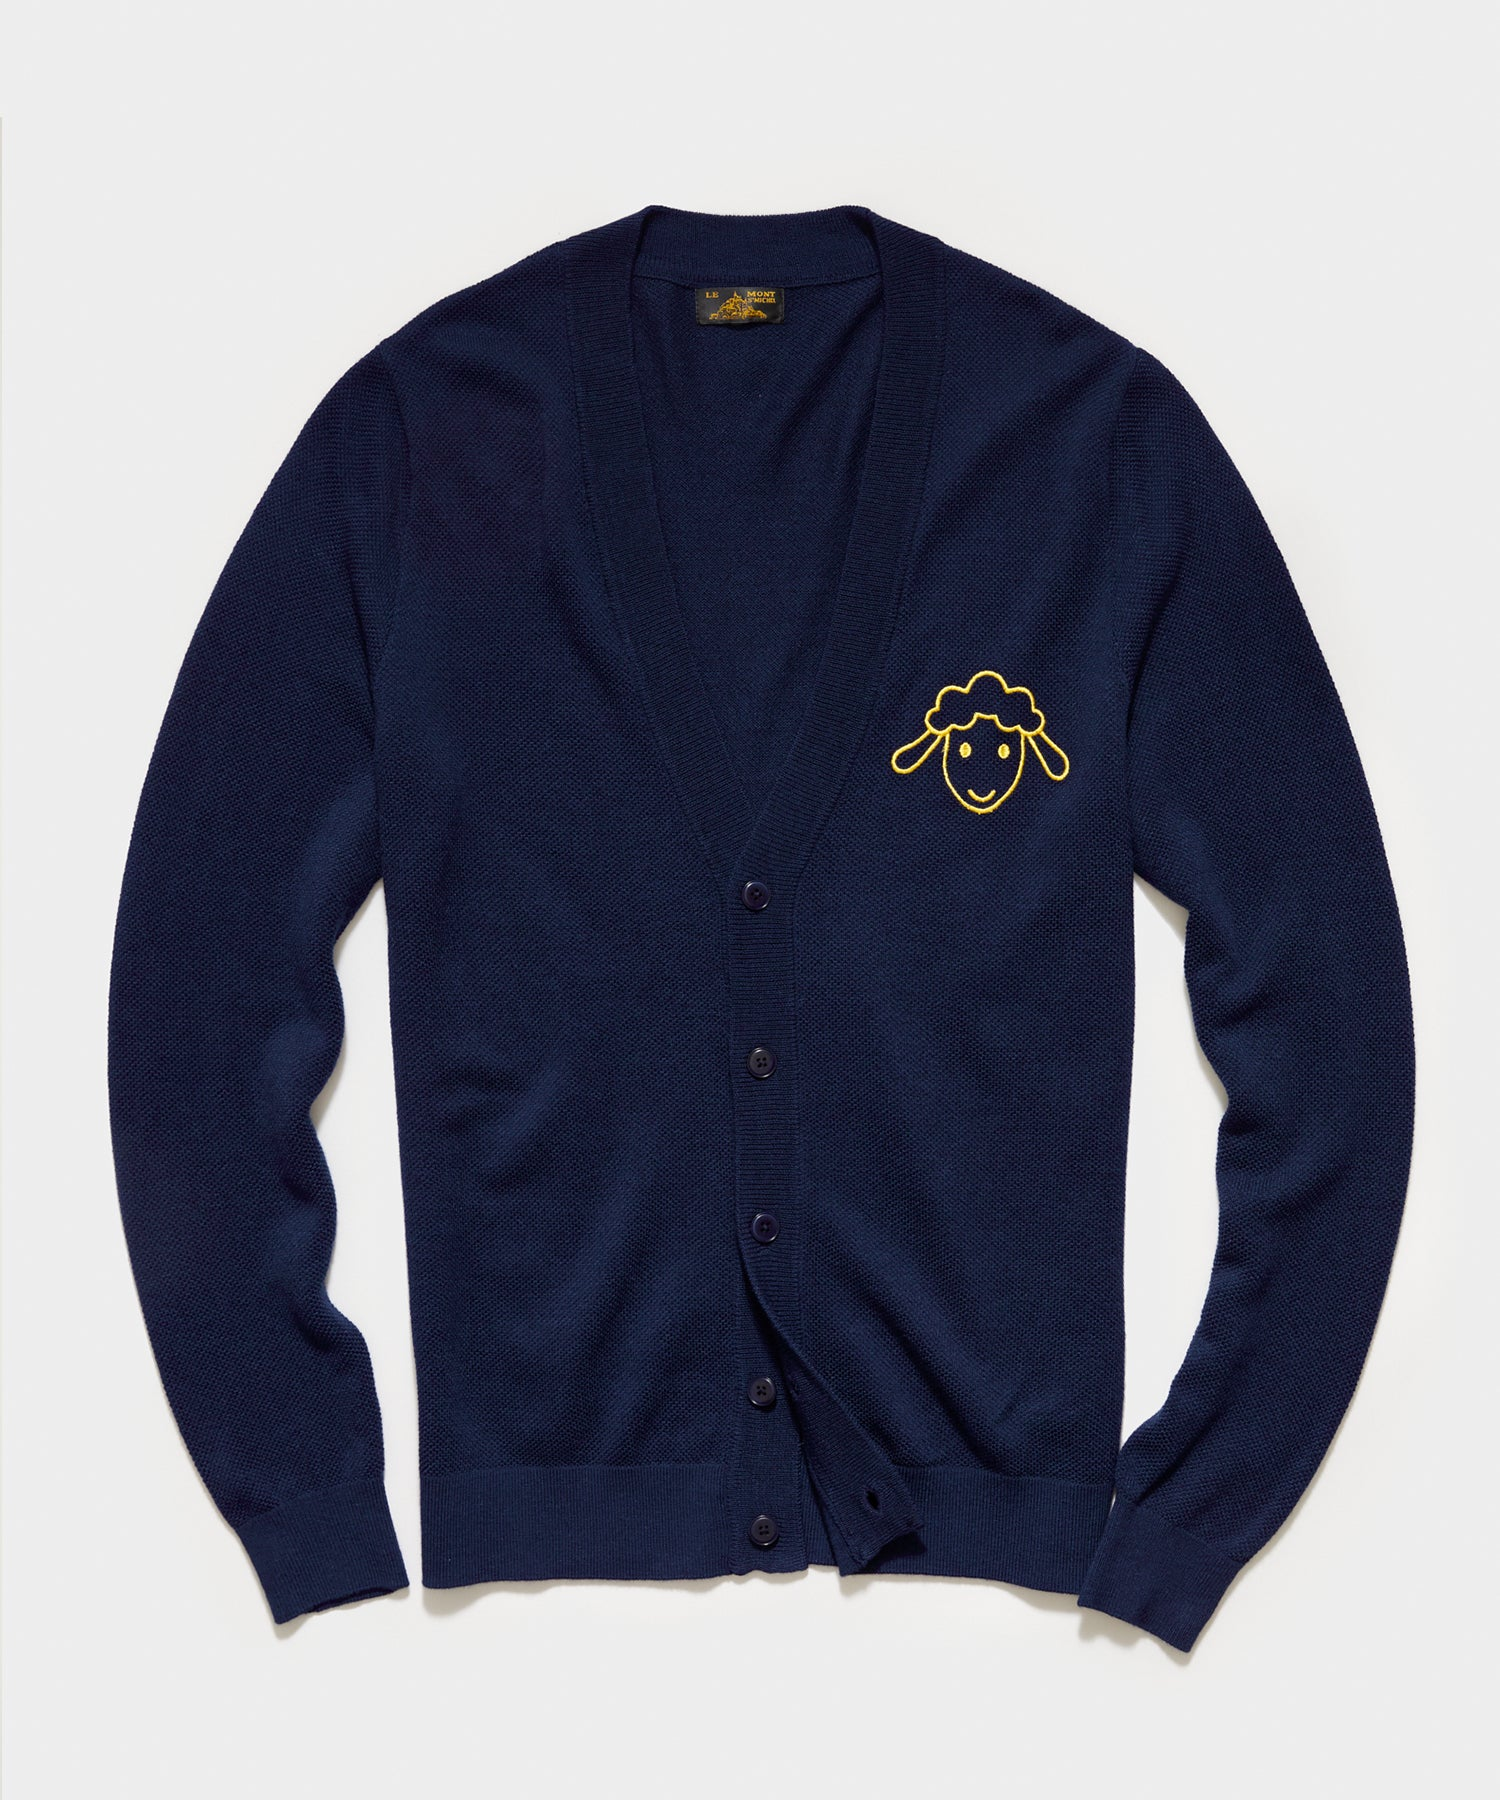 Le Mont St Michel Pique Lambs Embroidery Cardigan in Navy